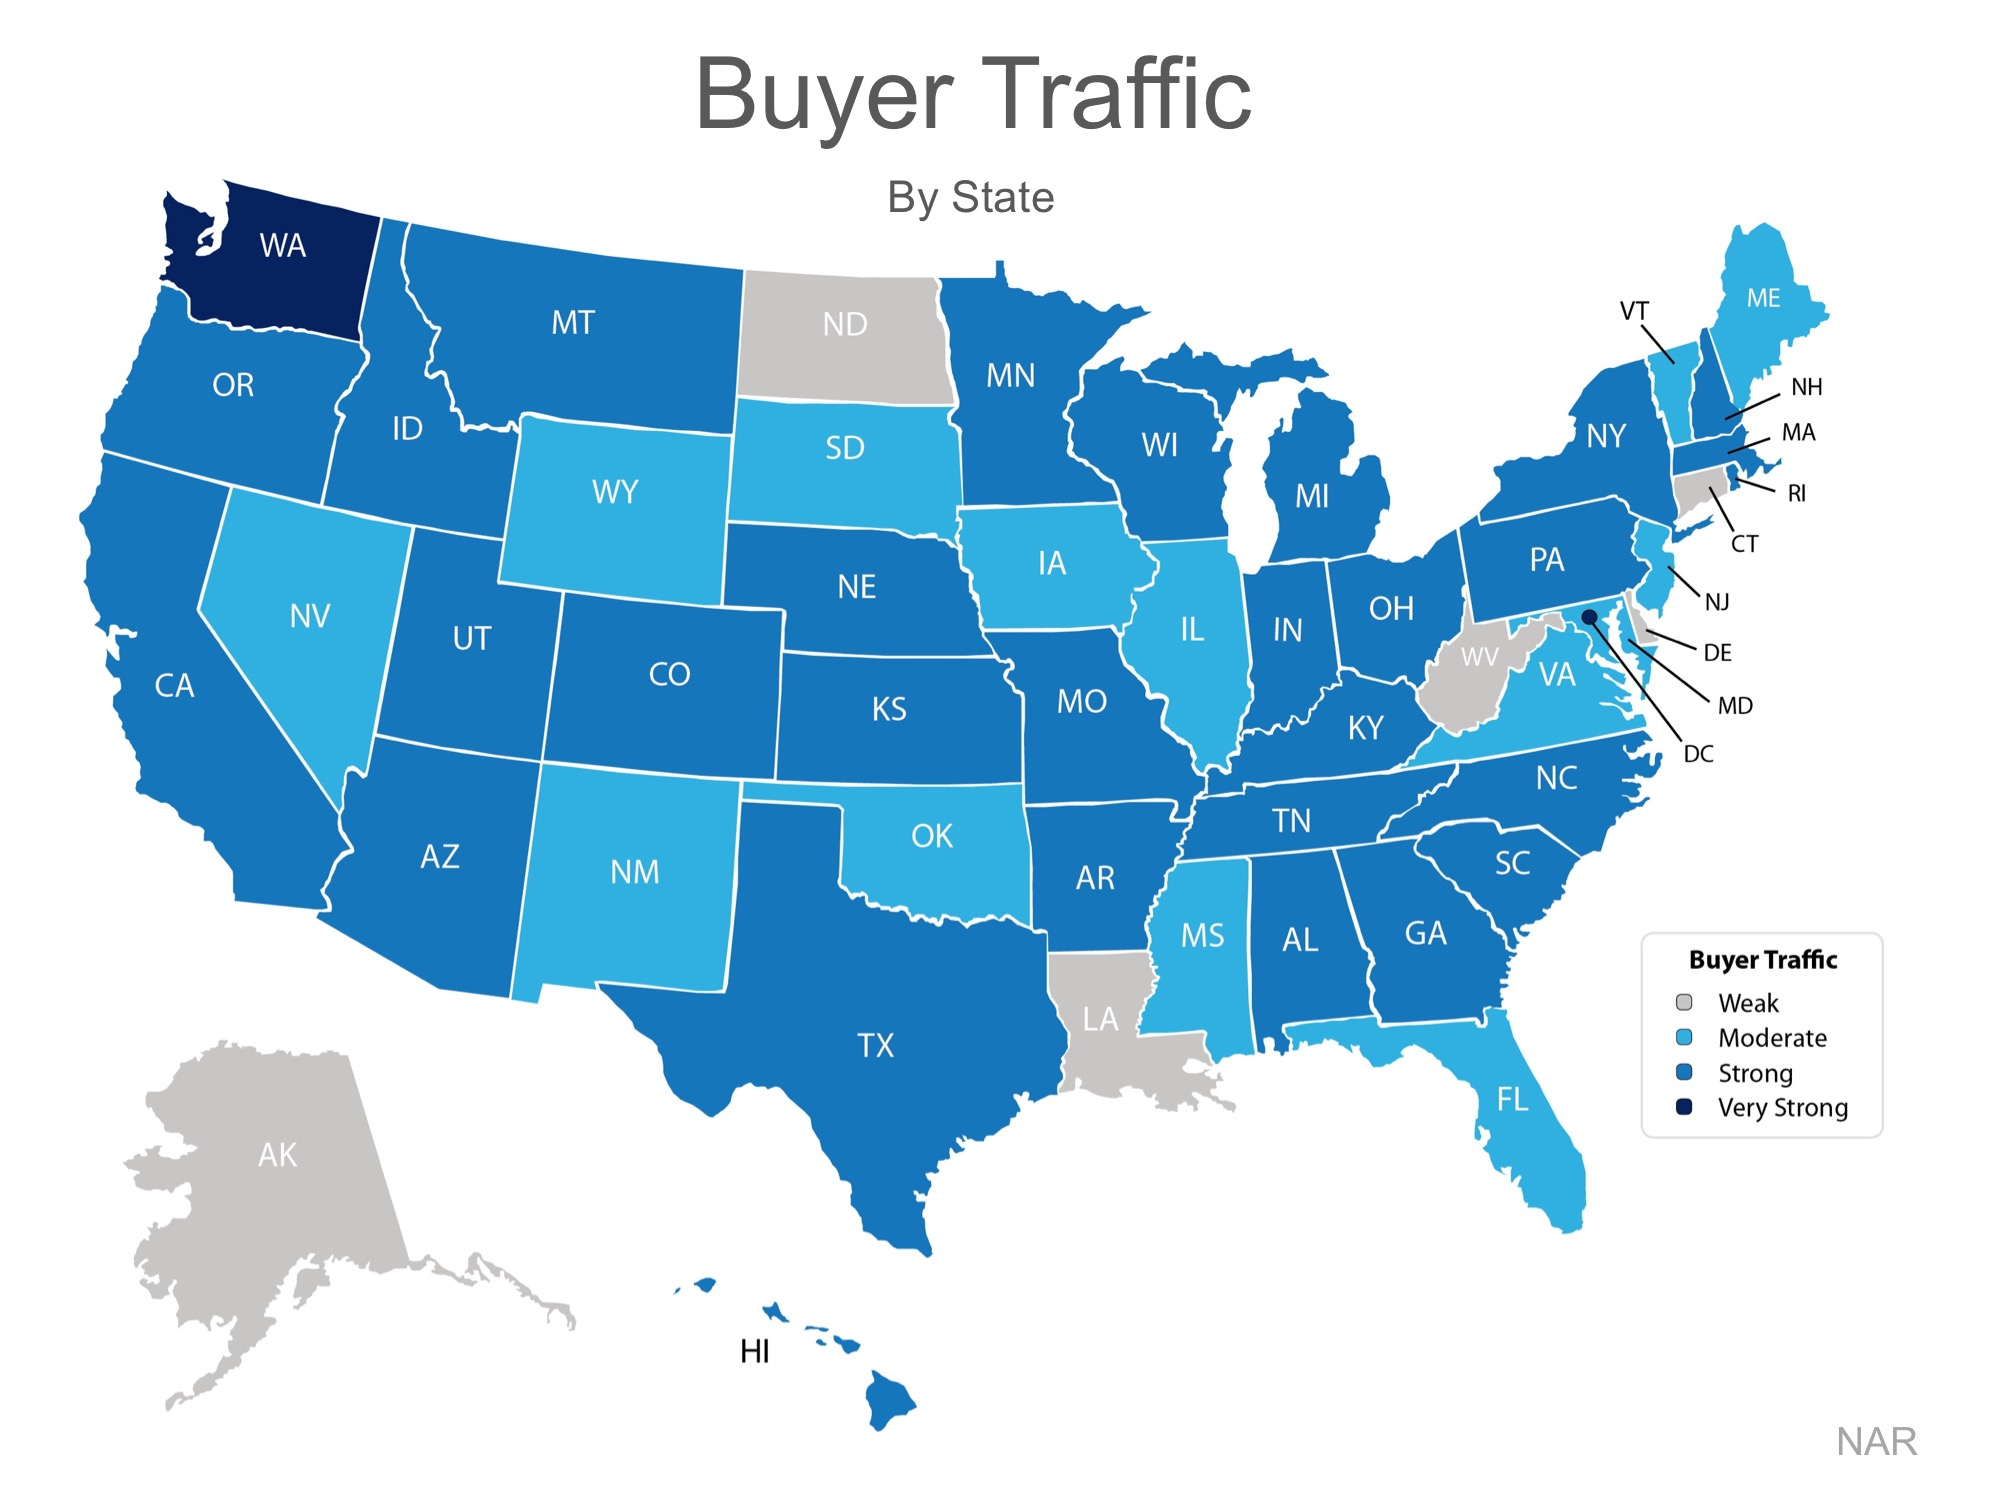 20170206-Buyer-Traffic-STM